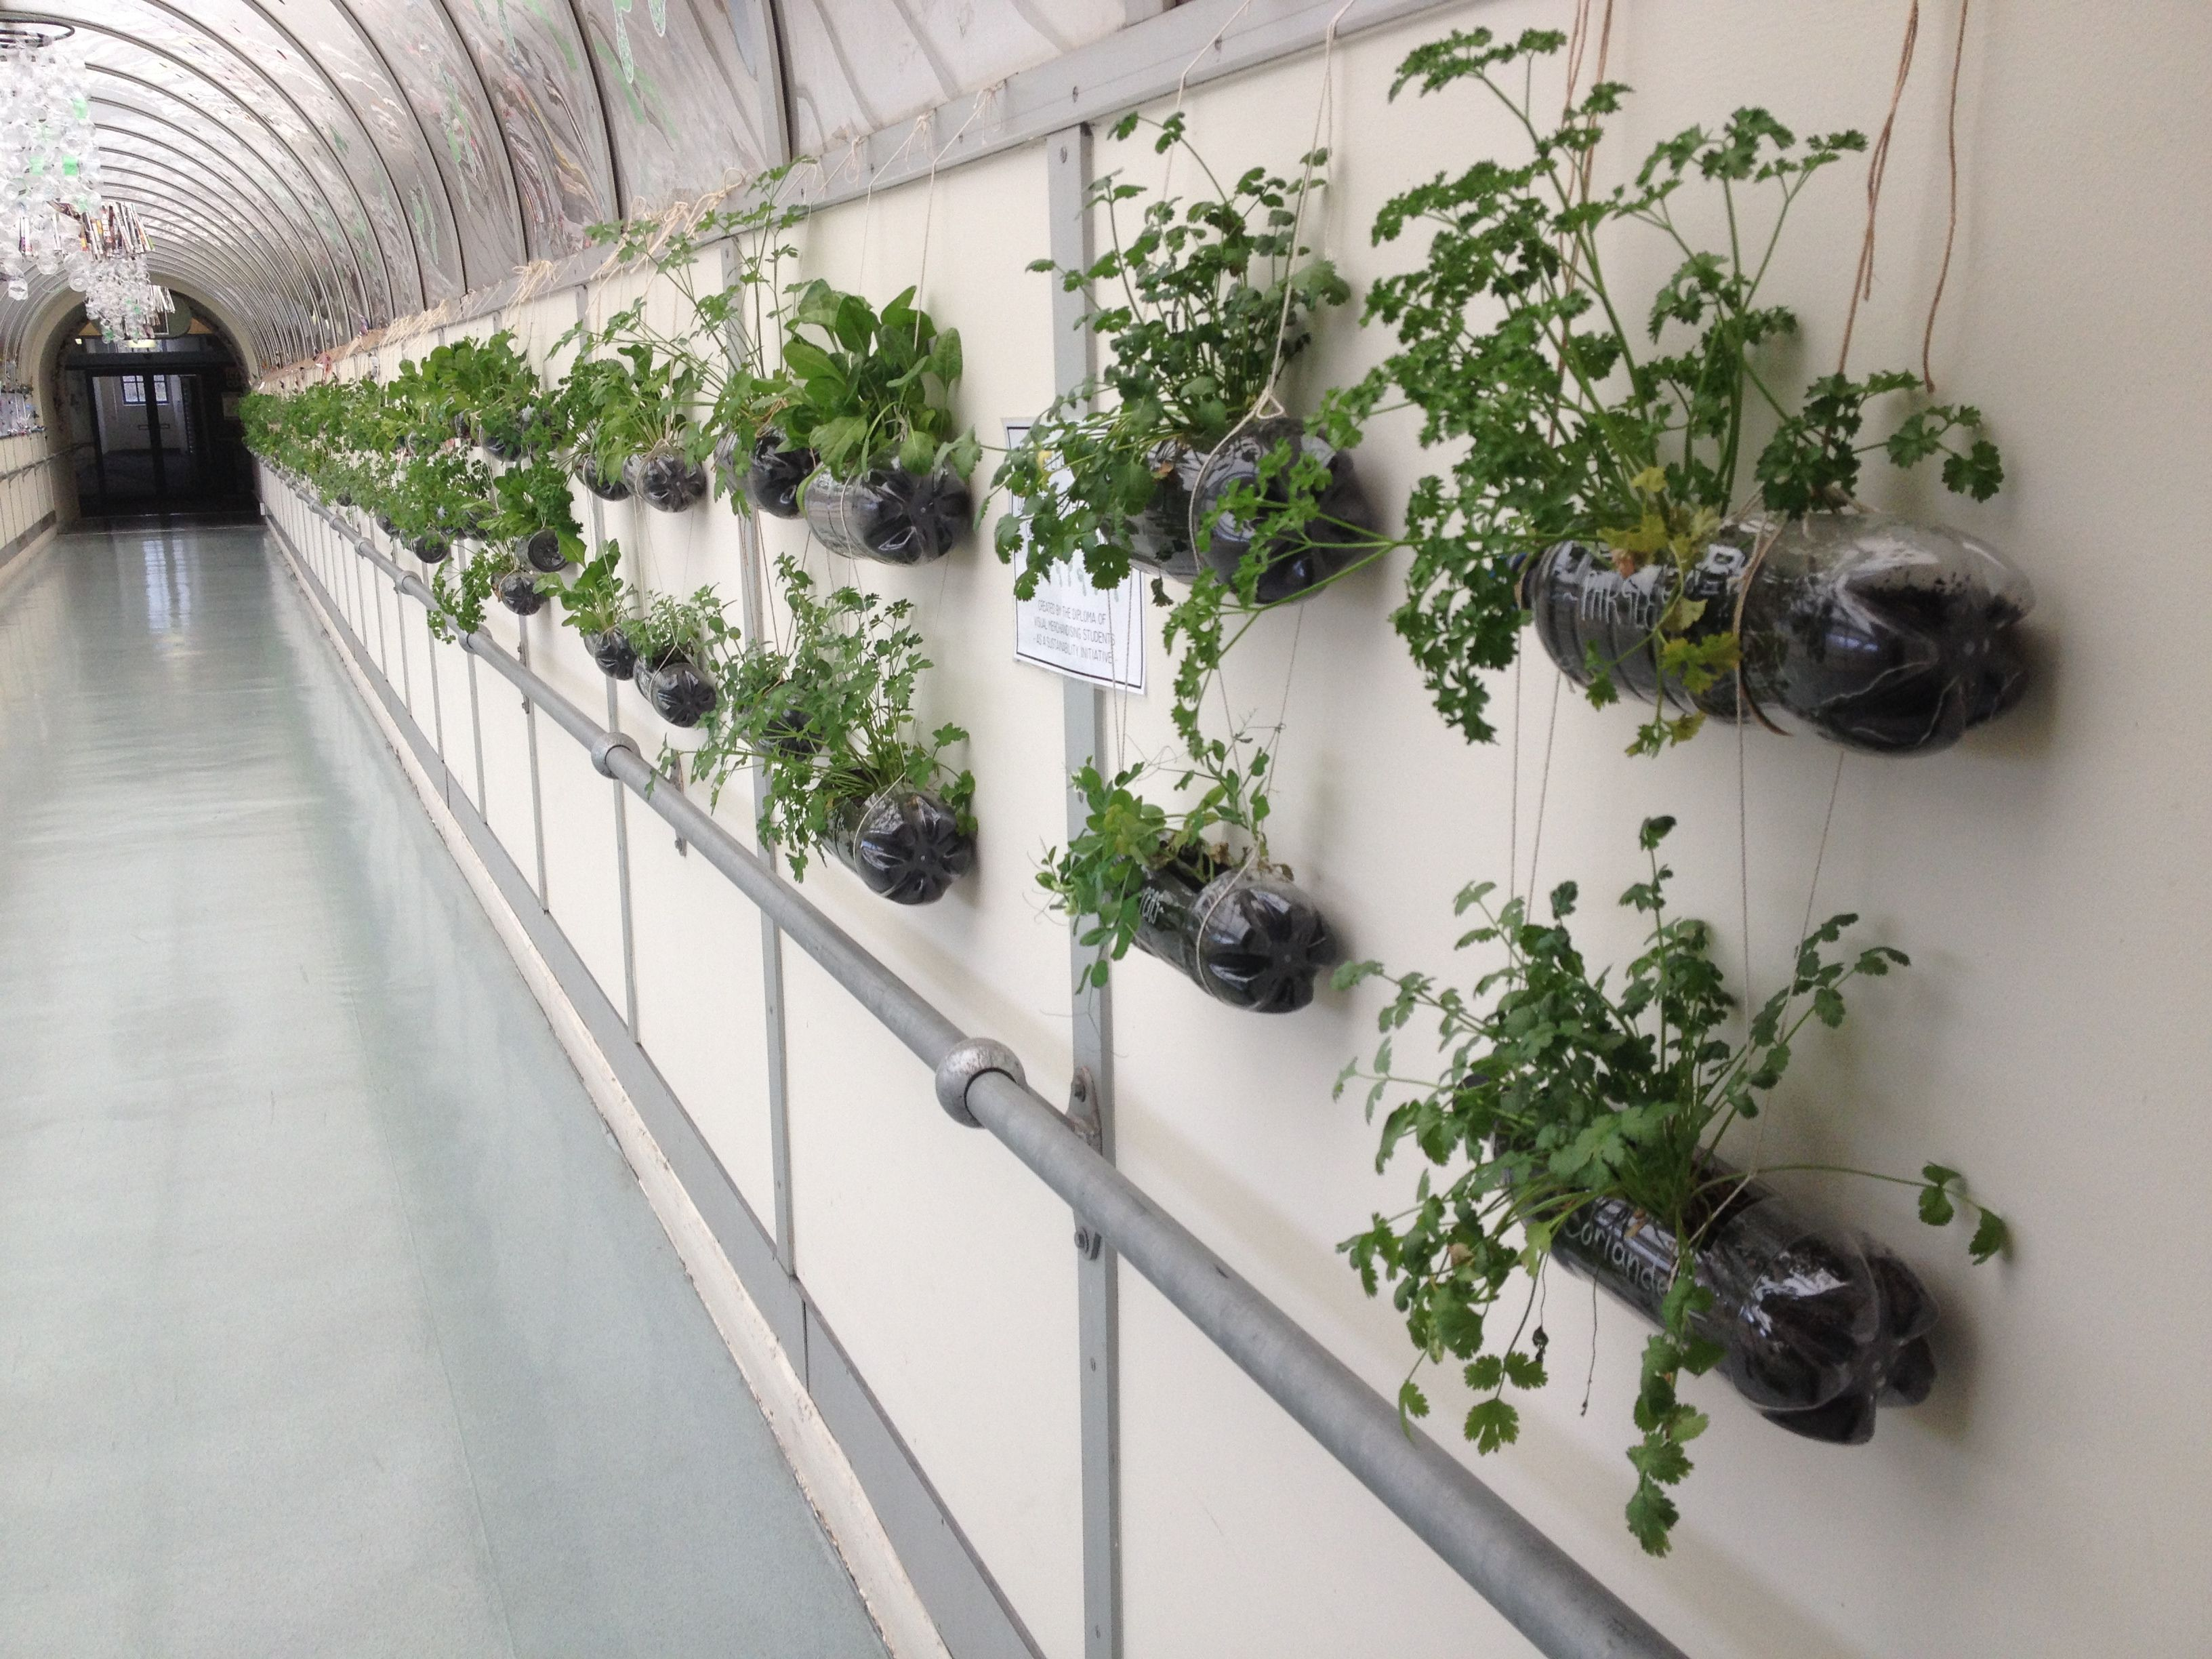 Students Used Recycled Soft Drink Bottles To Install Hanging Herb